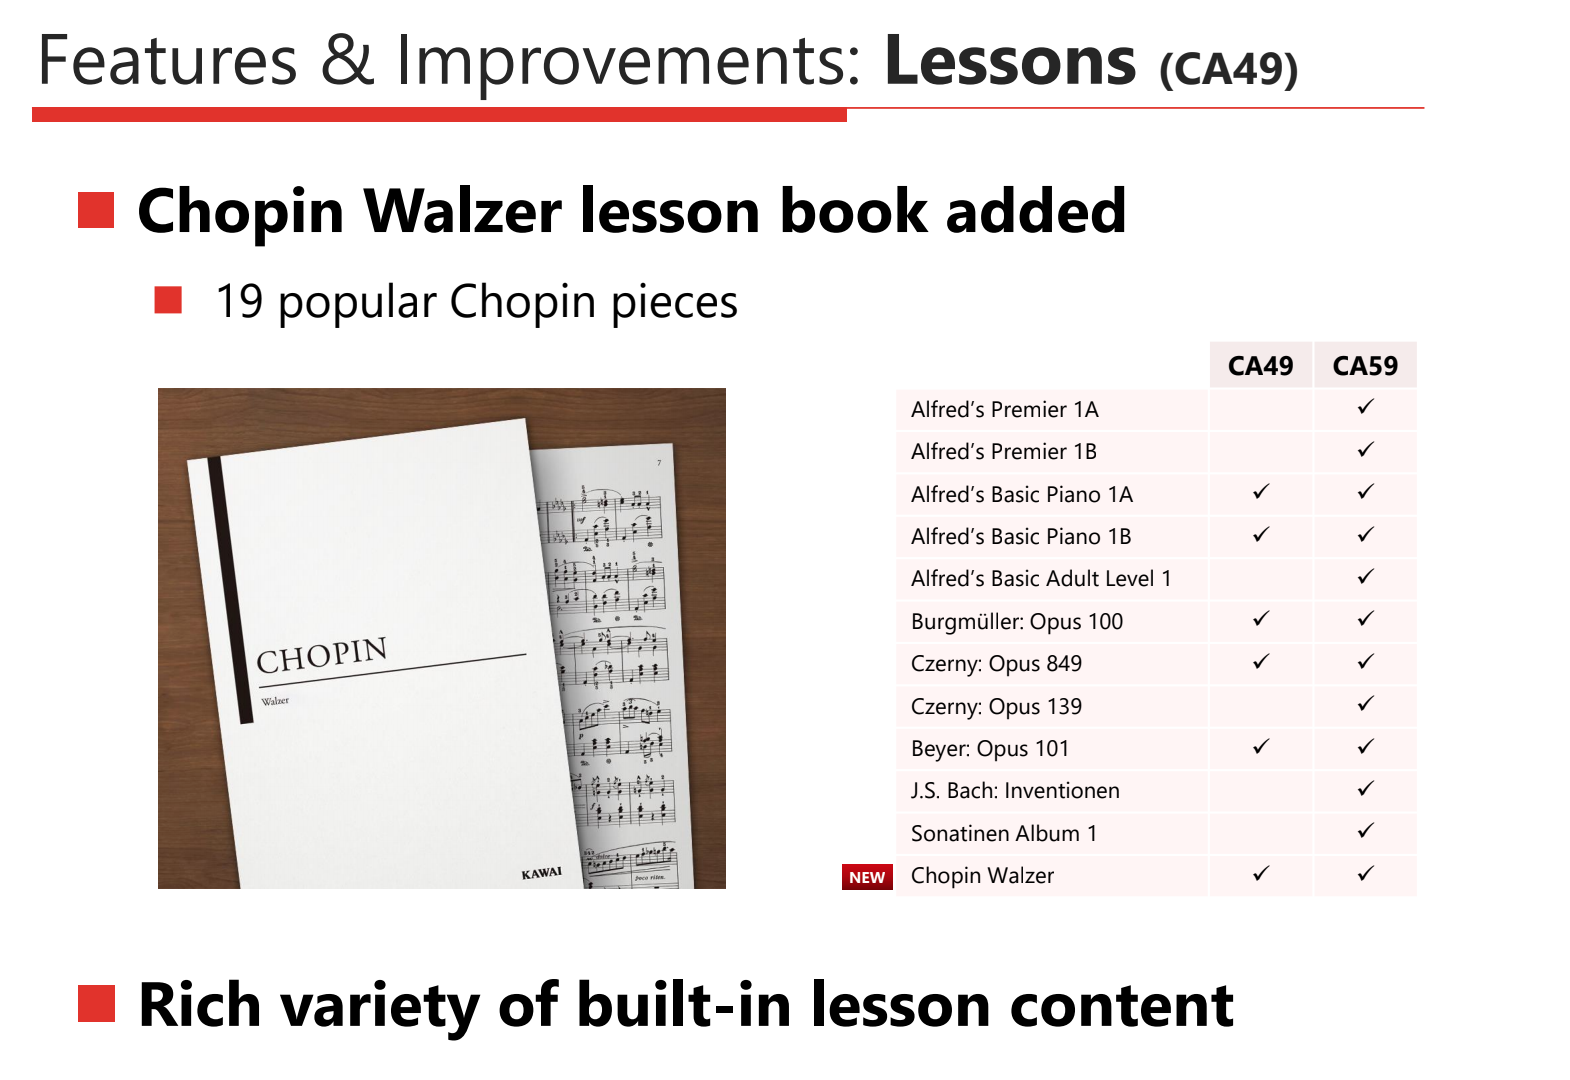 Kawai CA49 Concert Artist Series gets upgraded with new built-in lesson content, including the Chopin Walzer lesson books